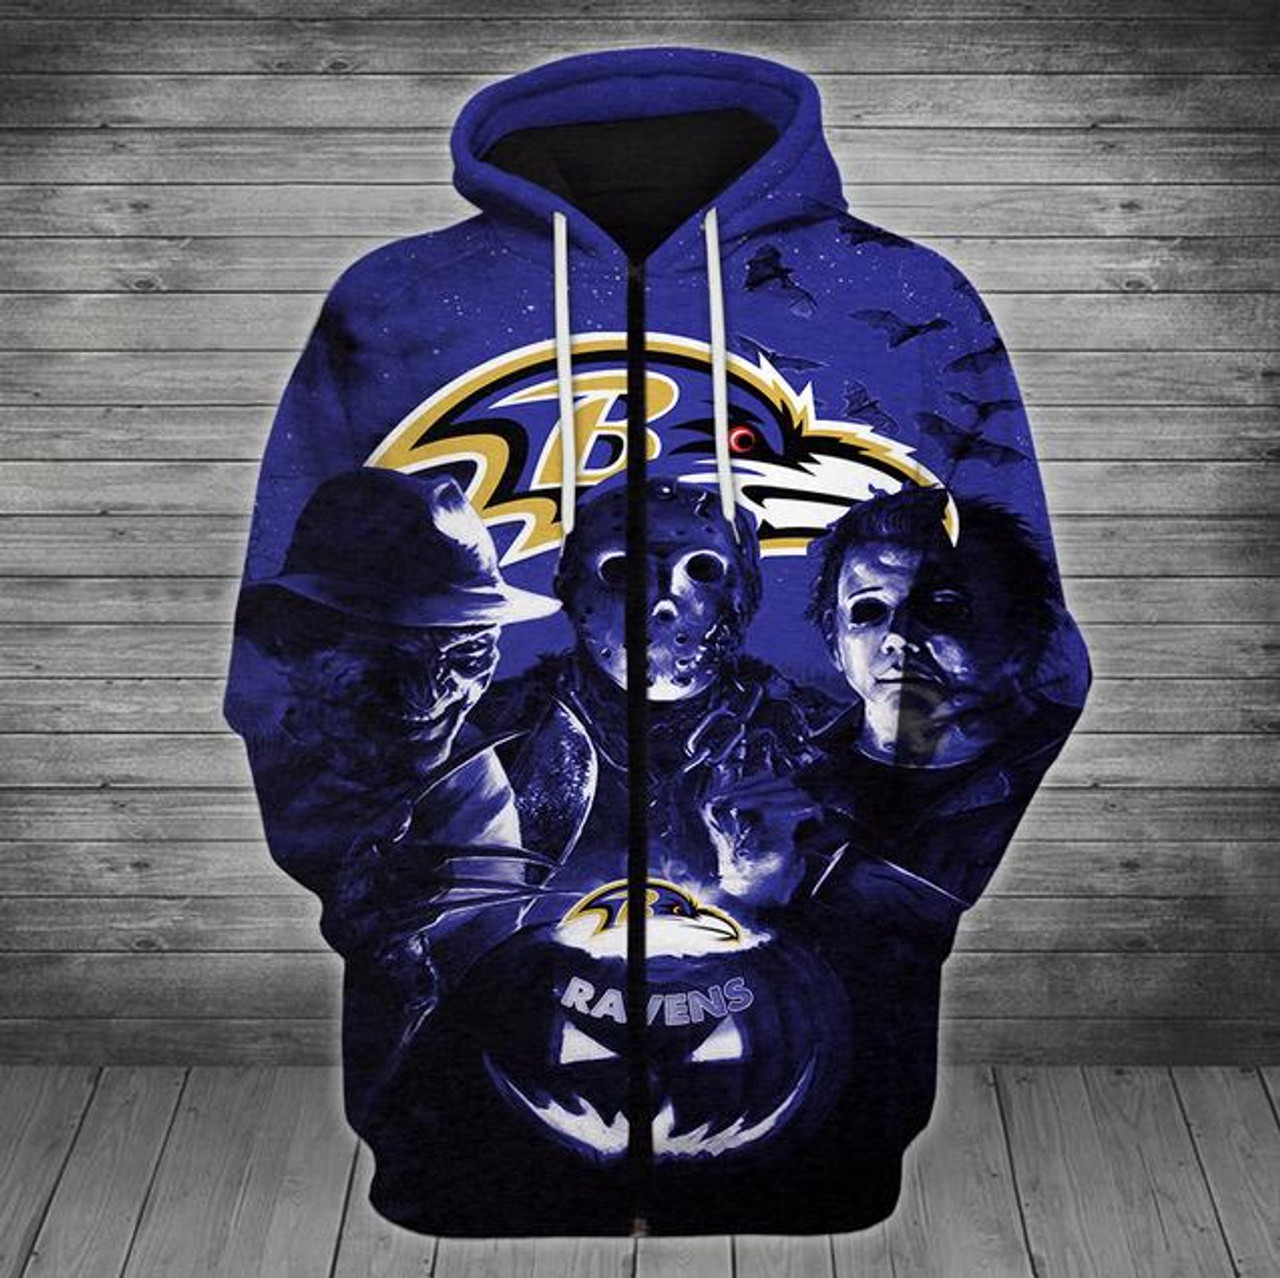 14e1c664 **(OFFICIALLY-LICENSED-N.F.L.BALTIMORE-RAVENS/CLASSIC-HALLOWEEN-HORROR-MOVIE-CHARACTERS-ZIPPERED-HOODIES/NICE-DETAILED-PREMIUM-CUSTOM-3D-GRAPHIC-PRINT...